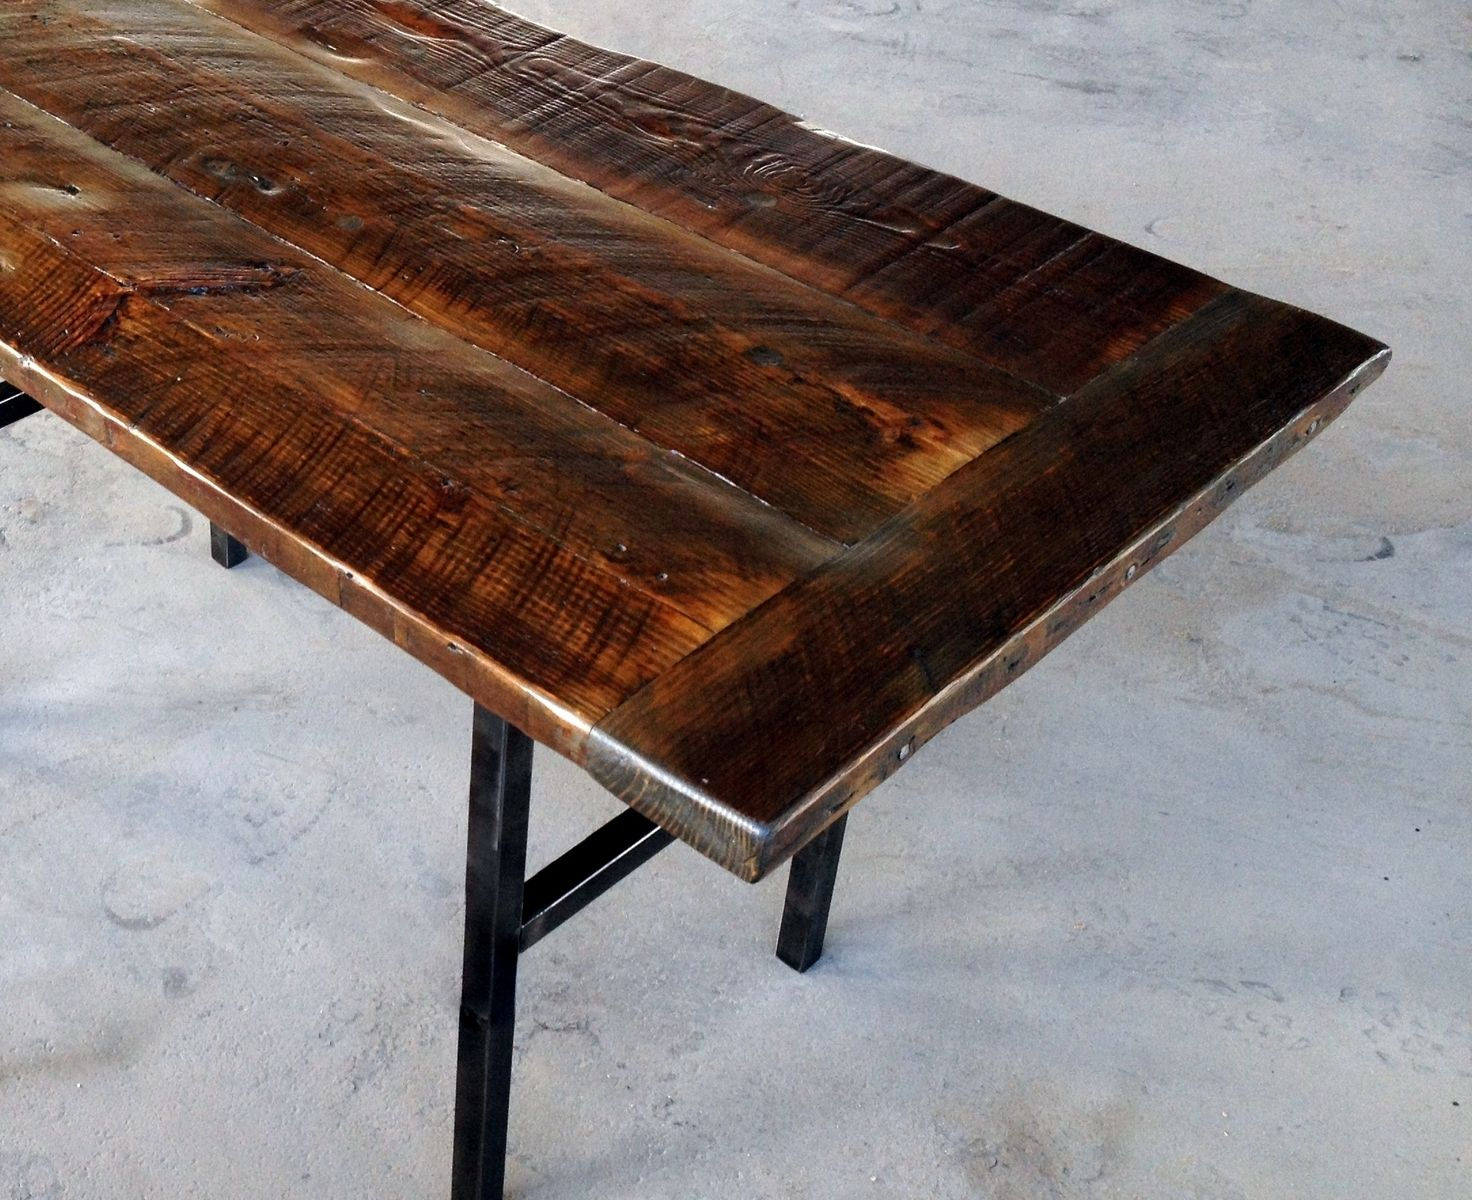 Hand Crafted Reclaimed Wood Kitchen Table With Steel Legs